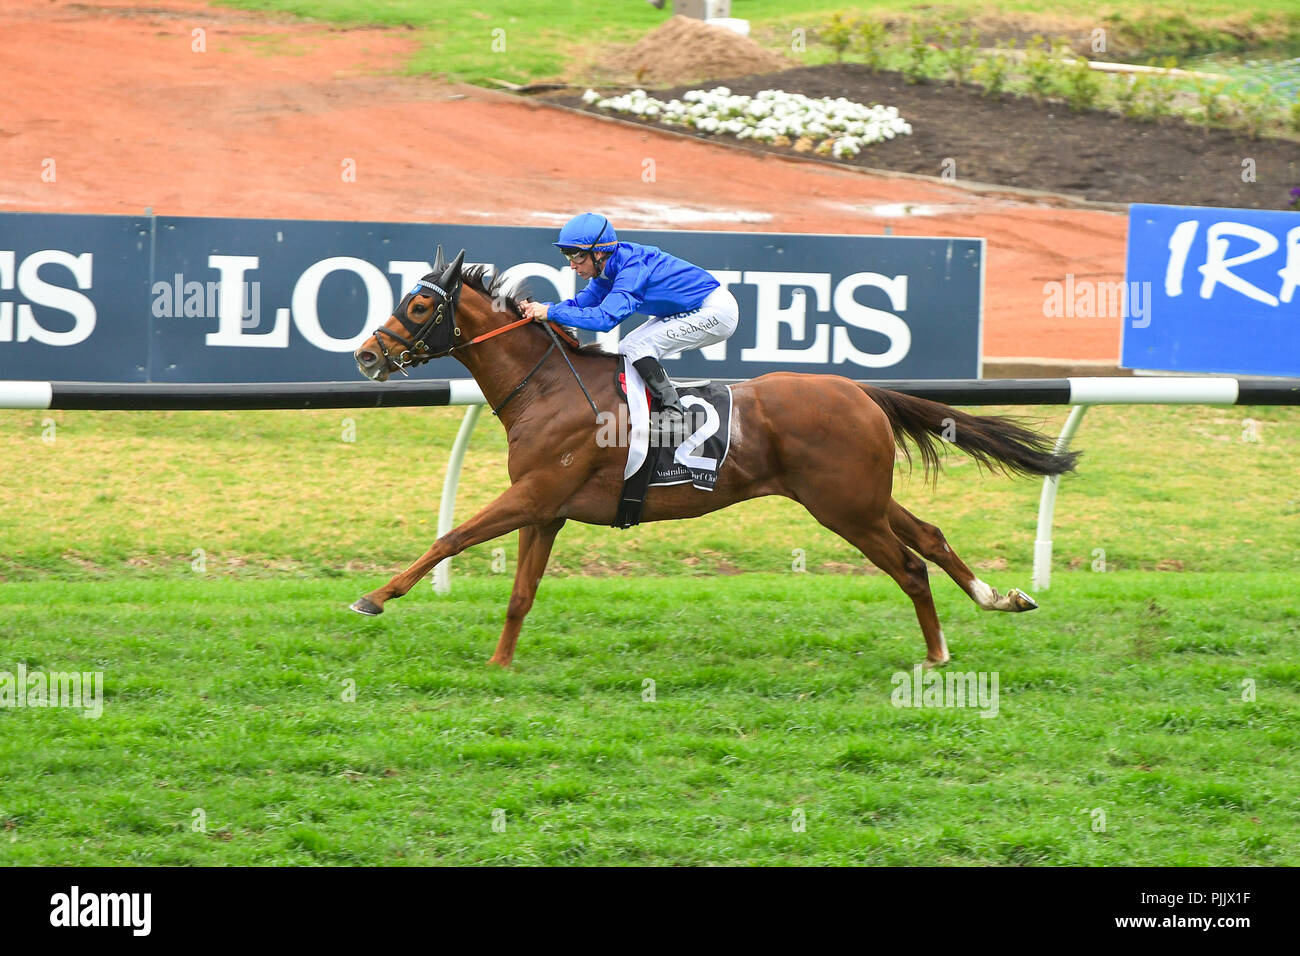 Sydney, Australia. 08 Sep 2018. Jockey Glyn Schofield rides Home Of The Brave to victory in race 5, the Theo Marks Stakes, during Run To The Rose Race Day at the Rosehill Gardens Racecourse, Sydney, Australia. Credit: Rafal Kontrym/Alamy Live News. - Stock Image